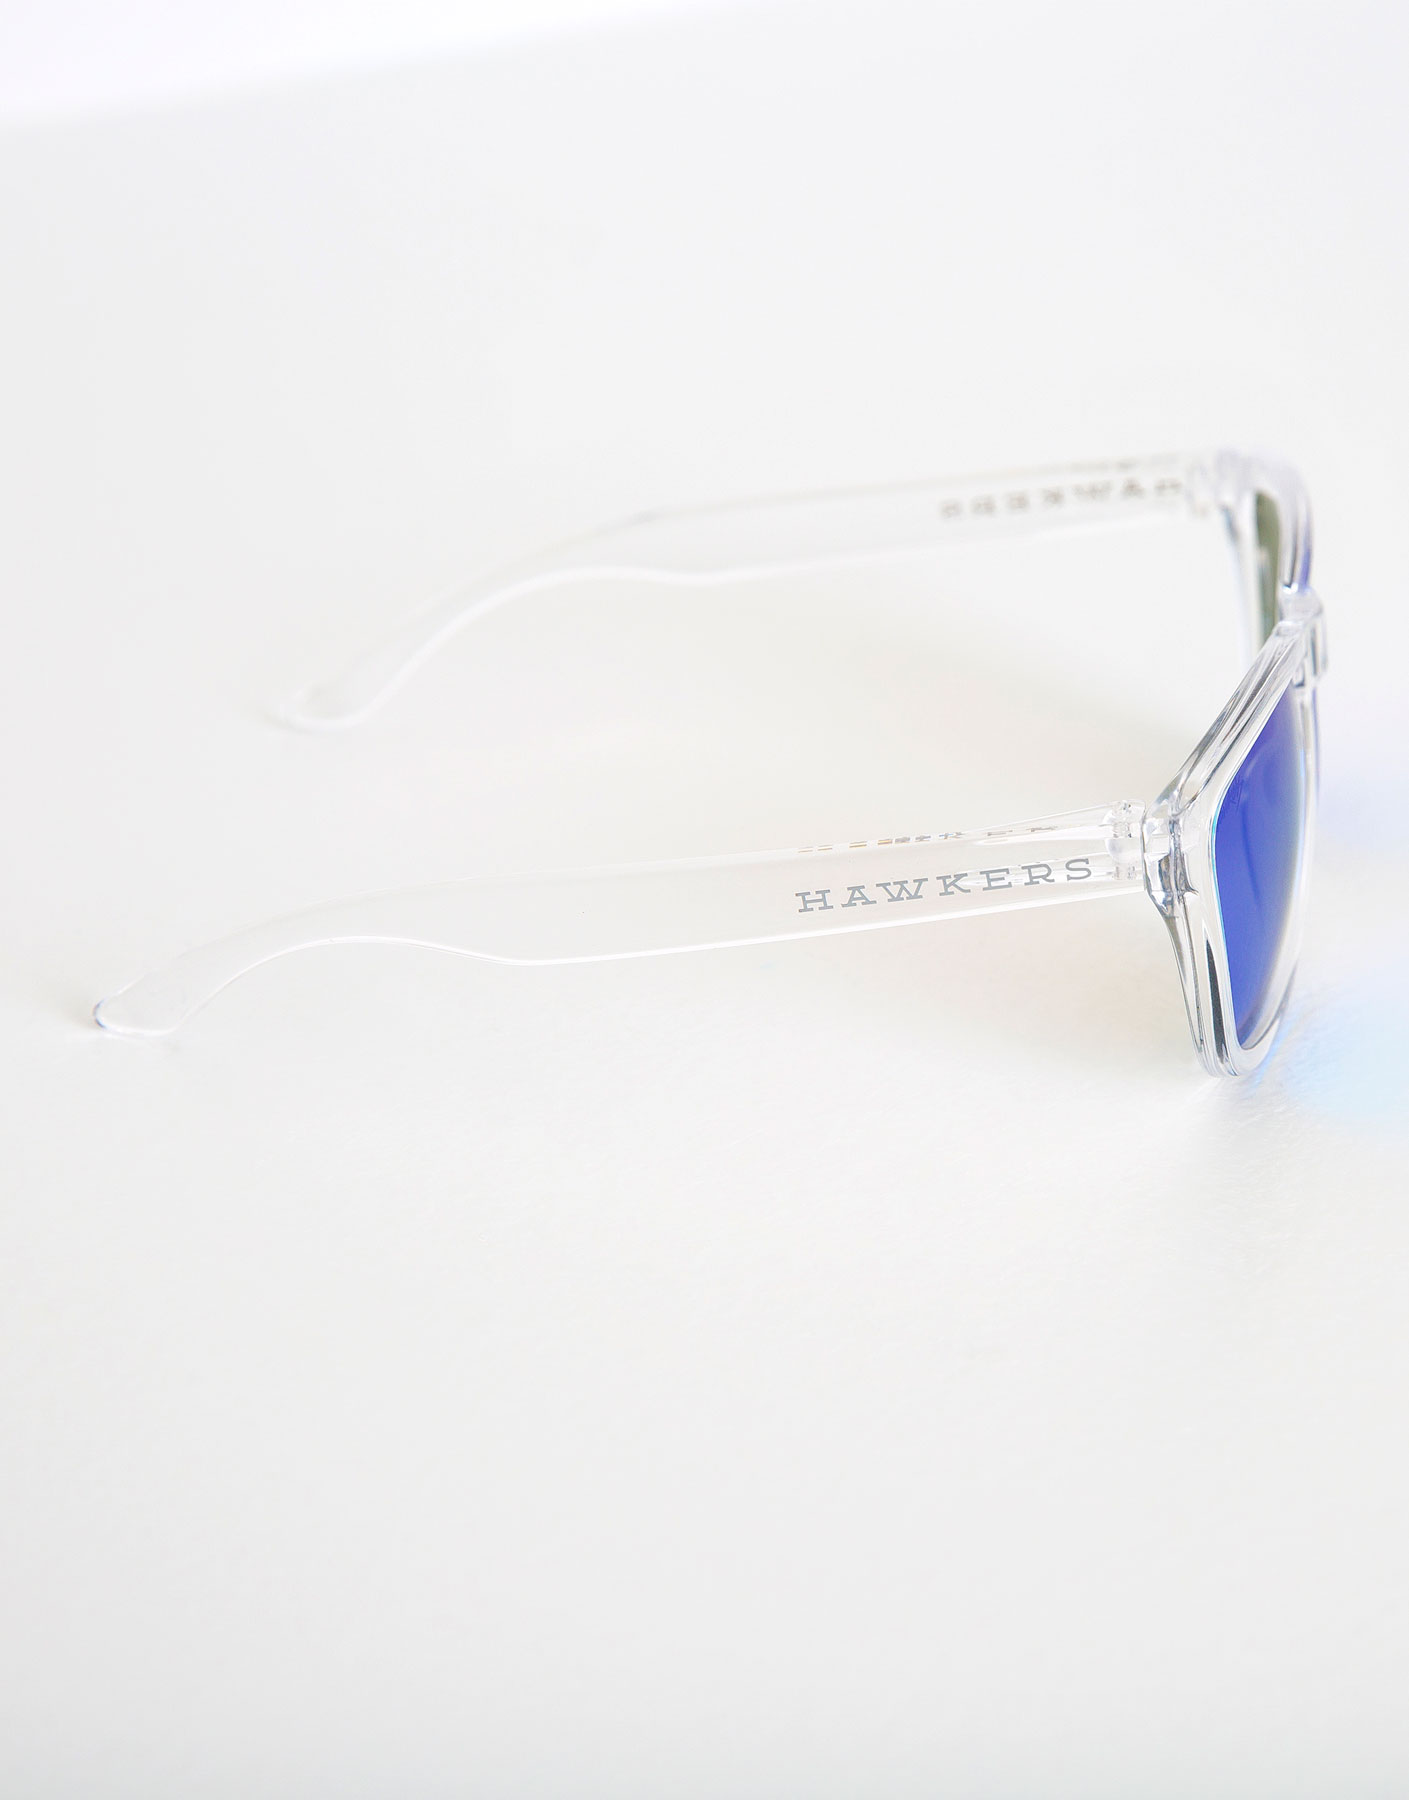 Hawkers air clear blue one sunglasses